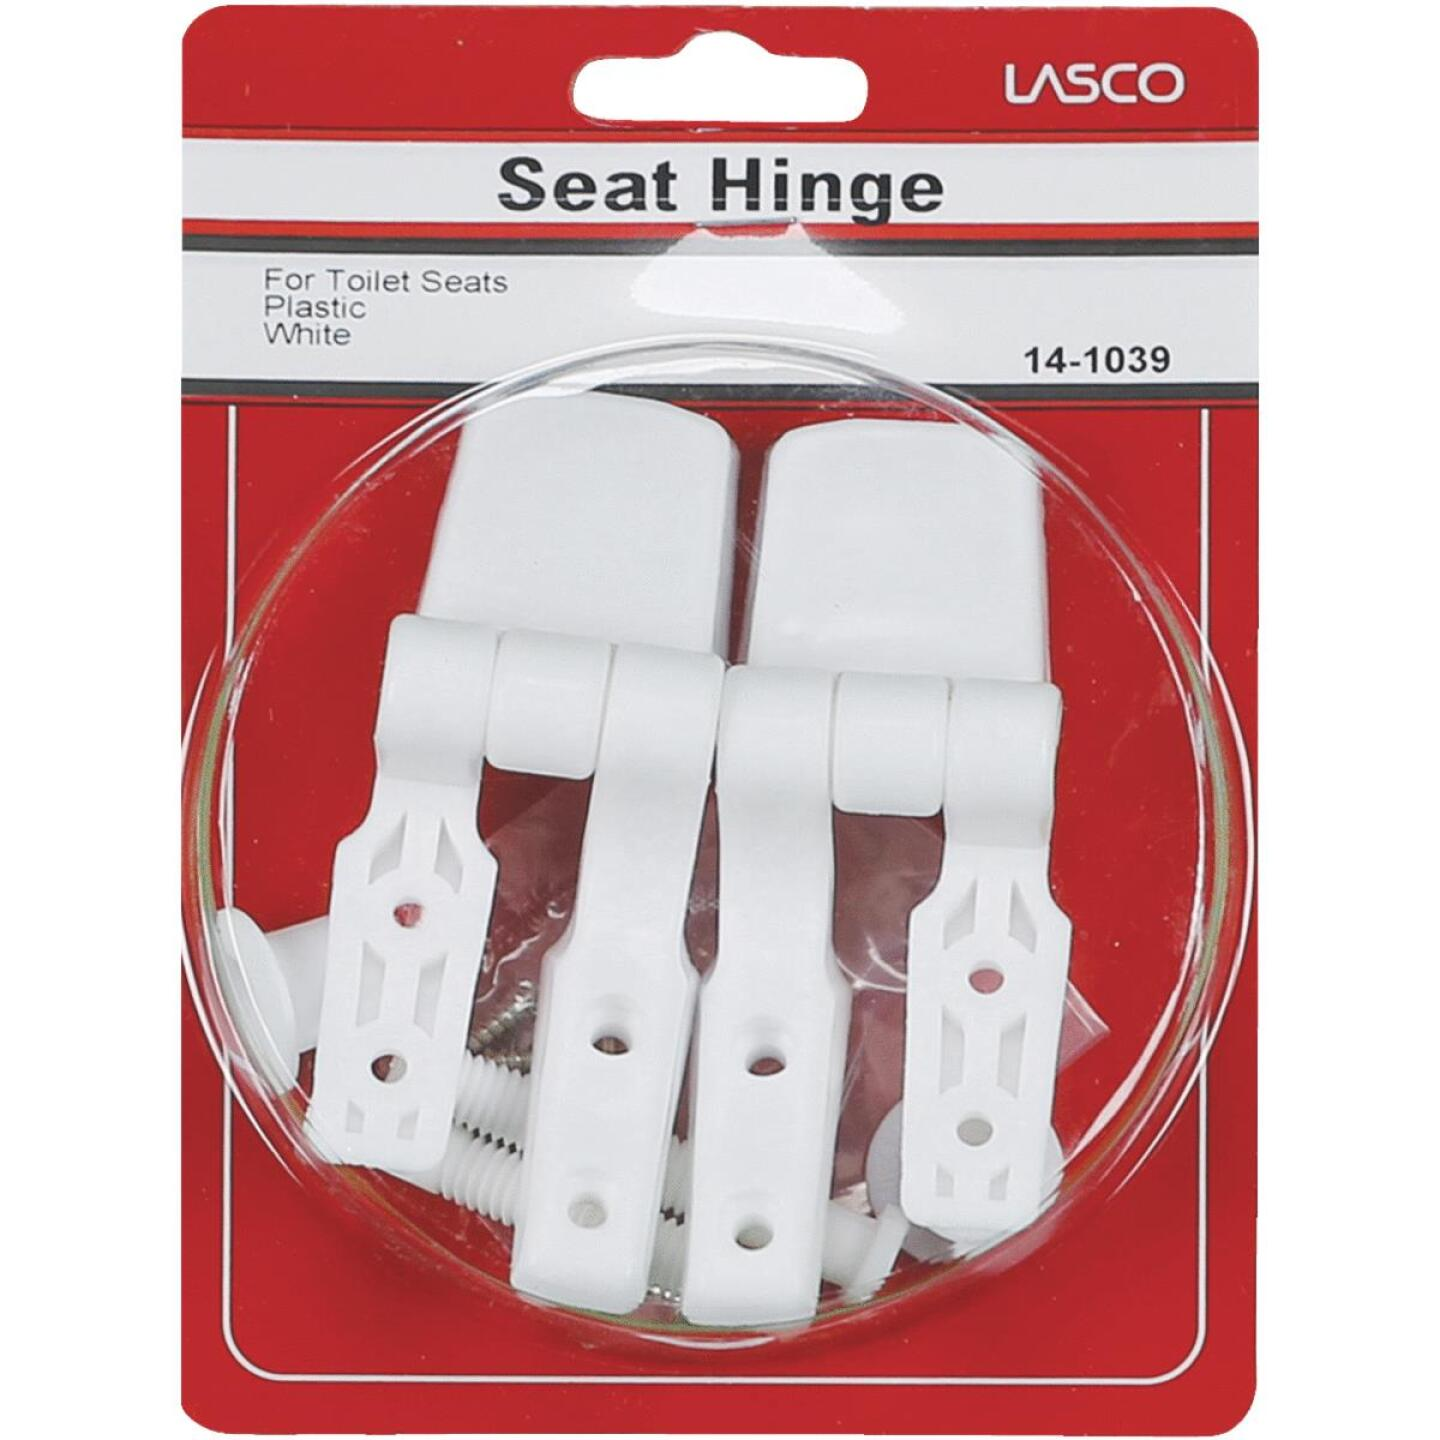 "Lasco 3/8"" x 2-1/2"" White Plastic Toilet Seat Hinge for Bemis Image 2"